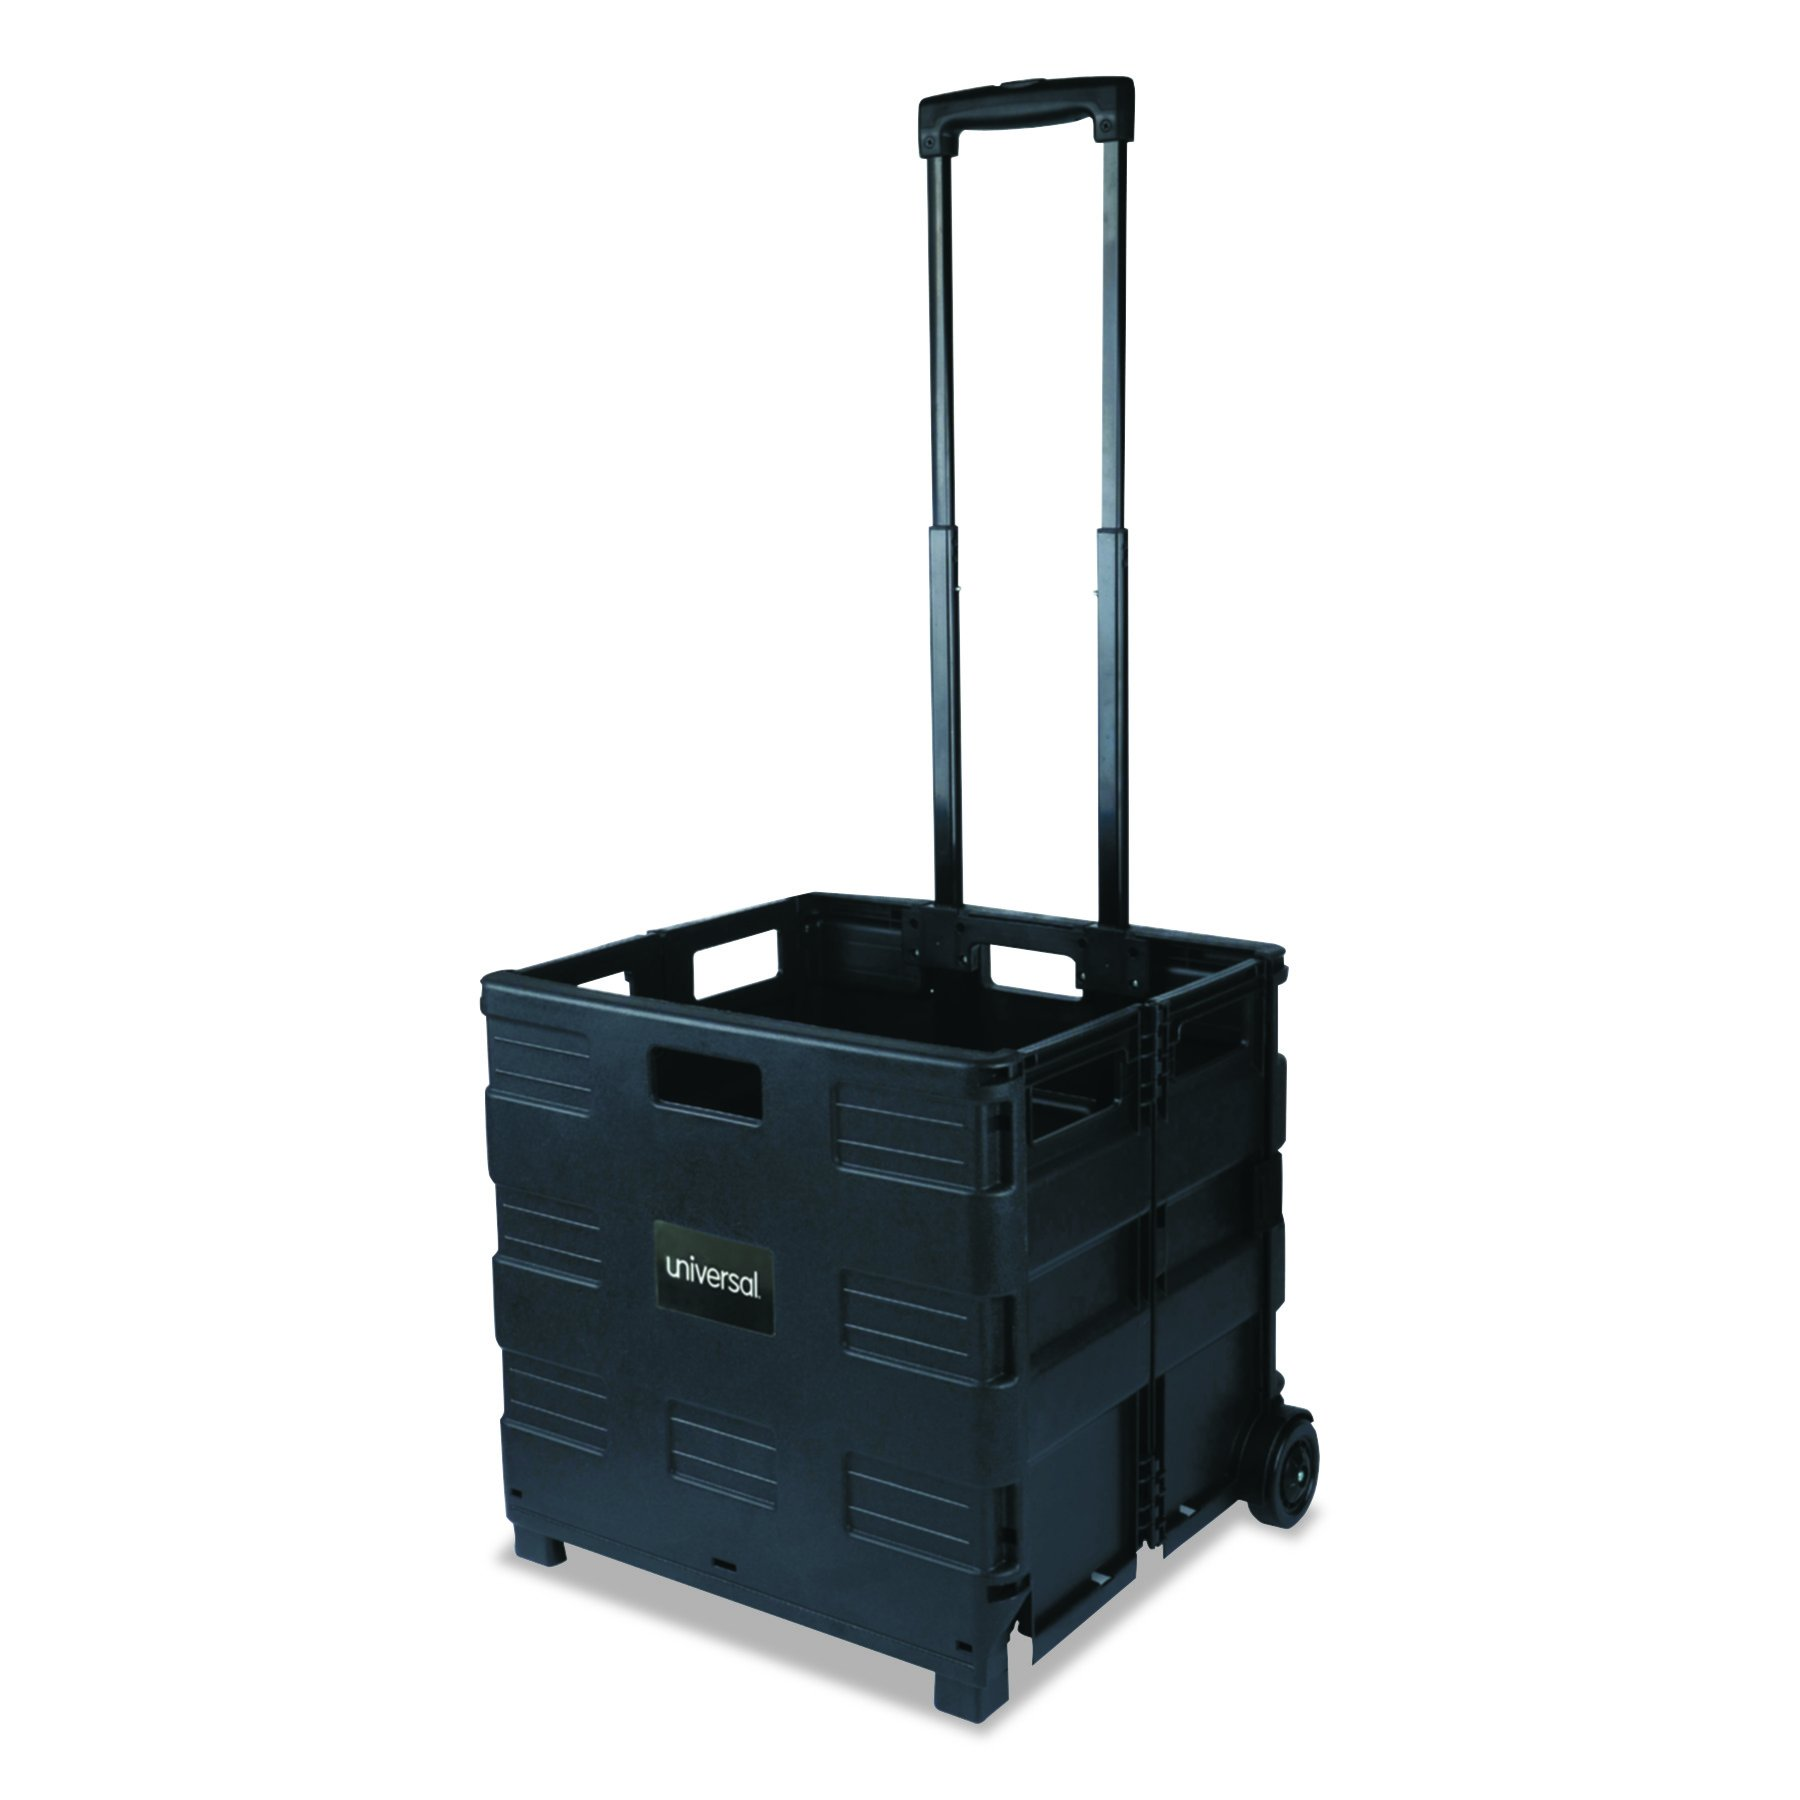 Safco Products 4054BL STOW AWAY Collapsible Mobile Storage Crate, Black by Safco Products